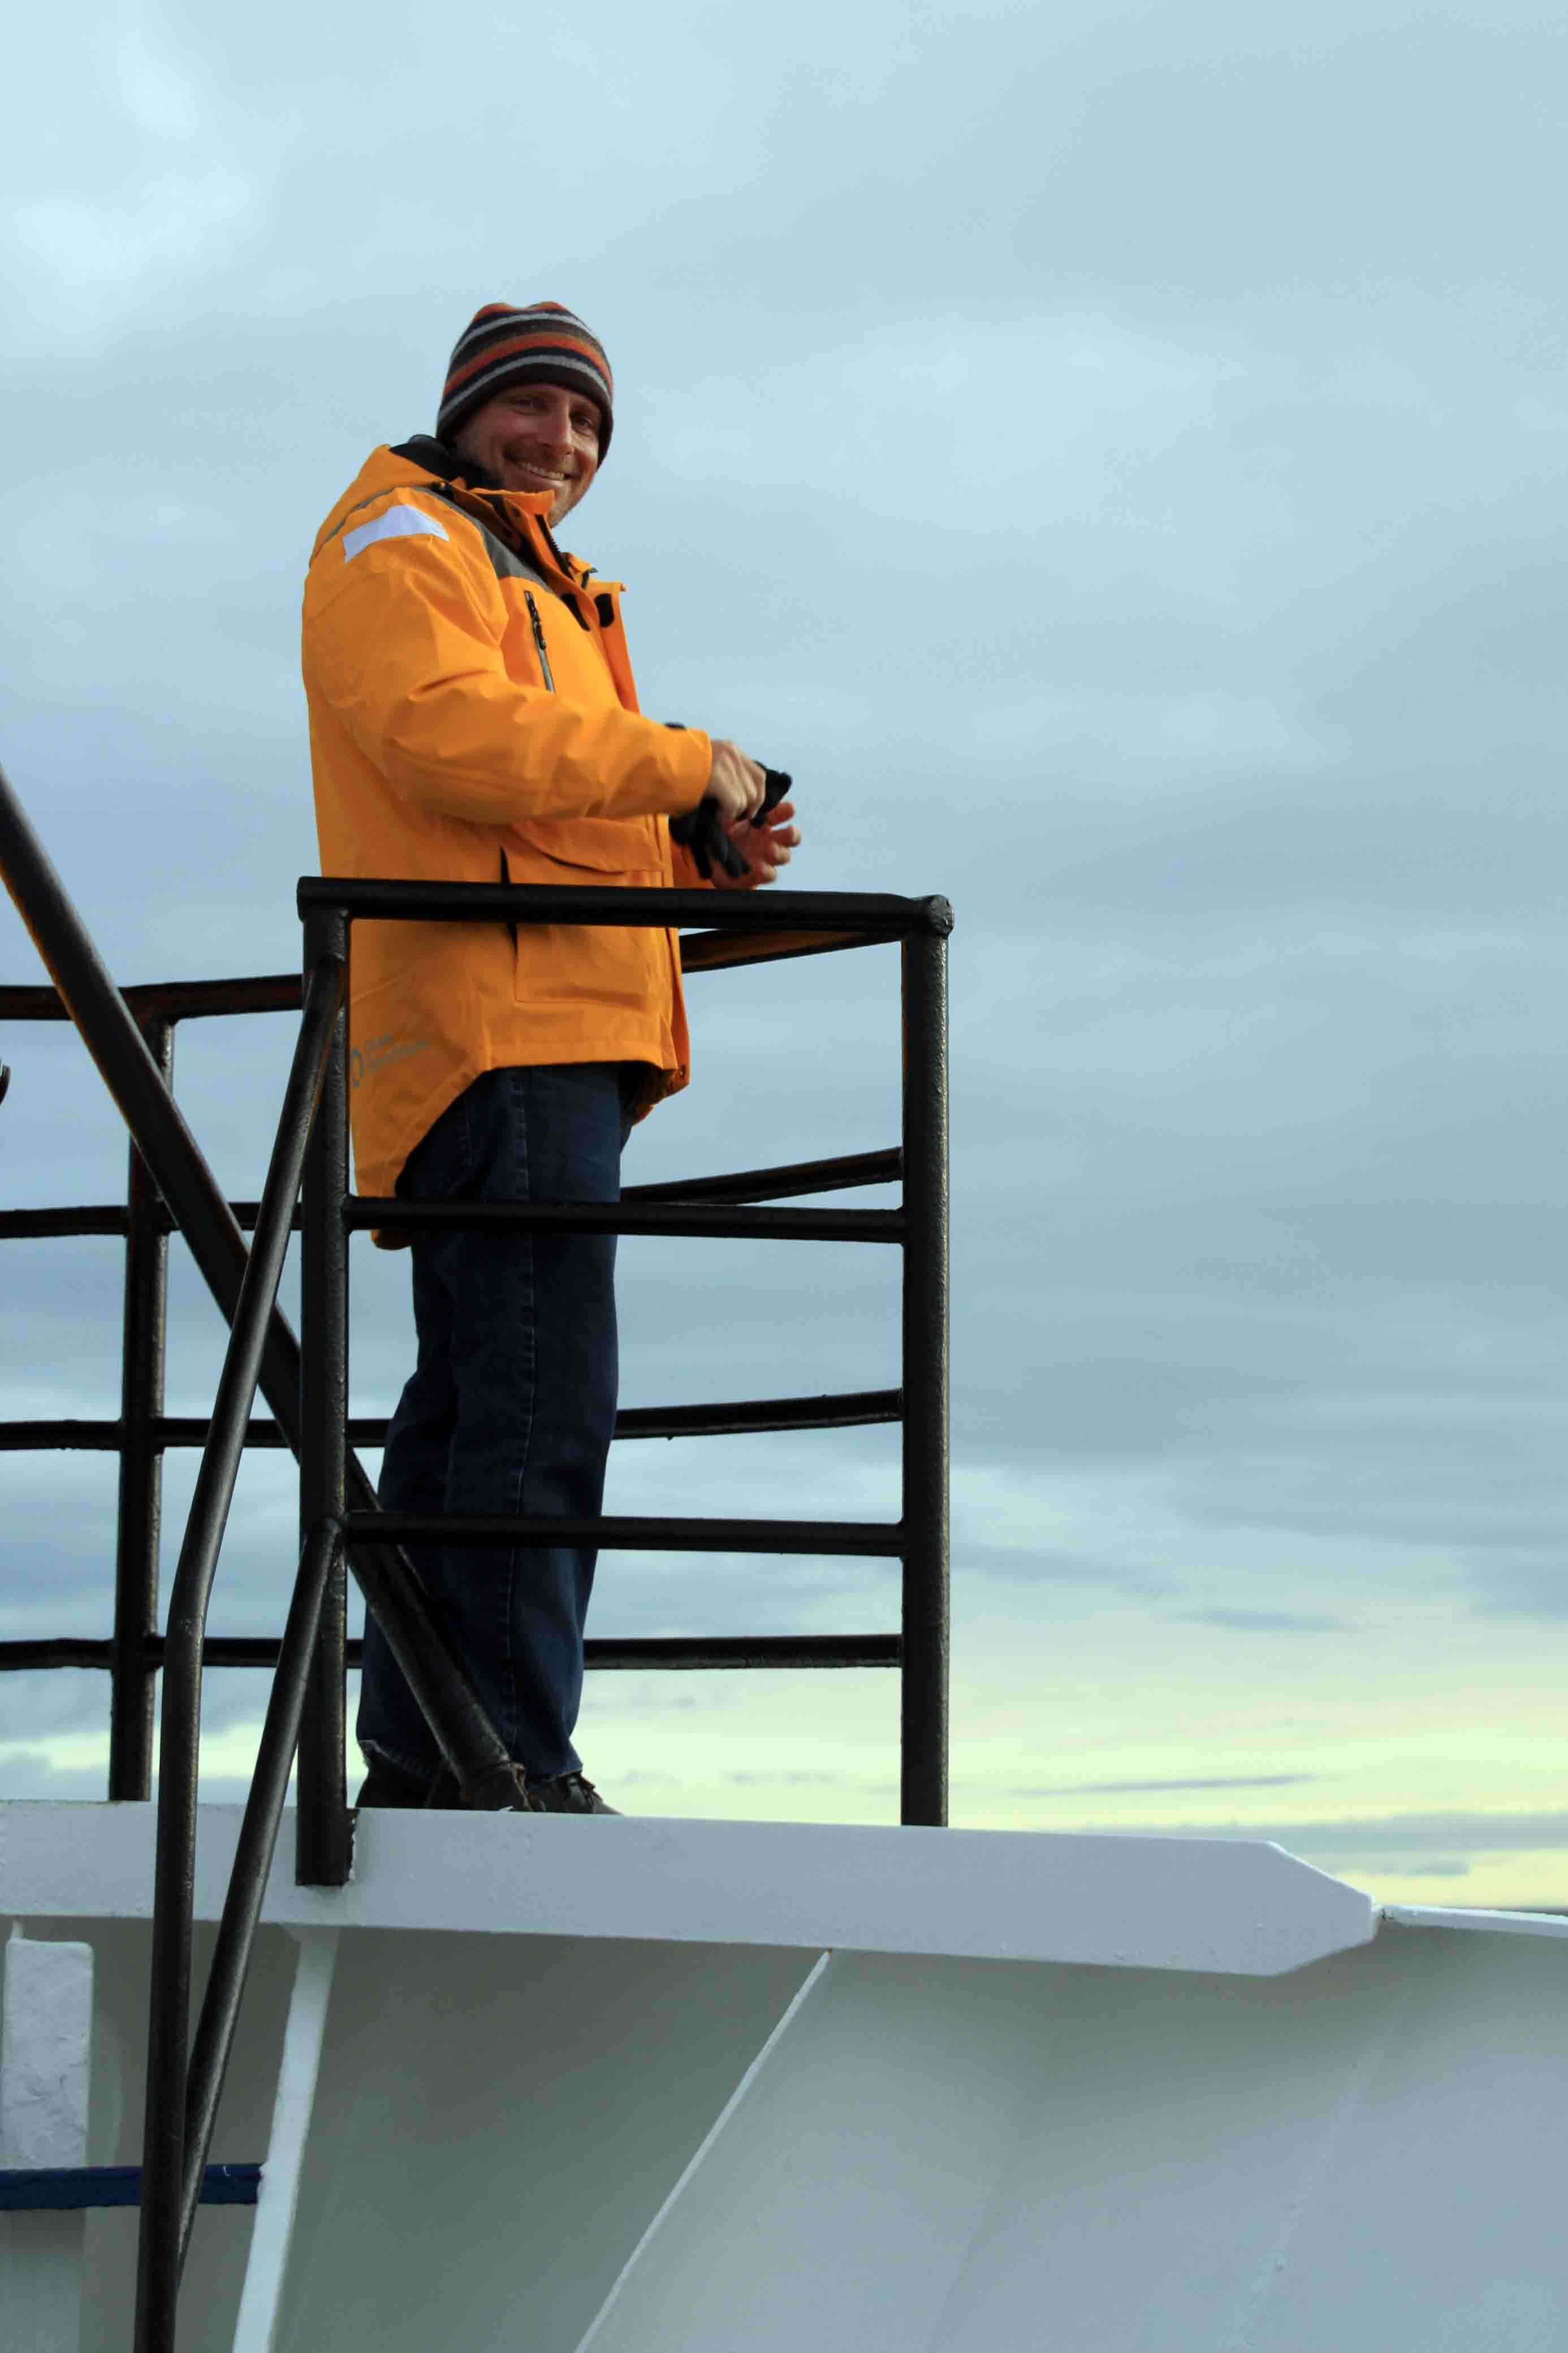 David on the ship in Longyearbyen, Spitsbergen